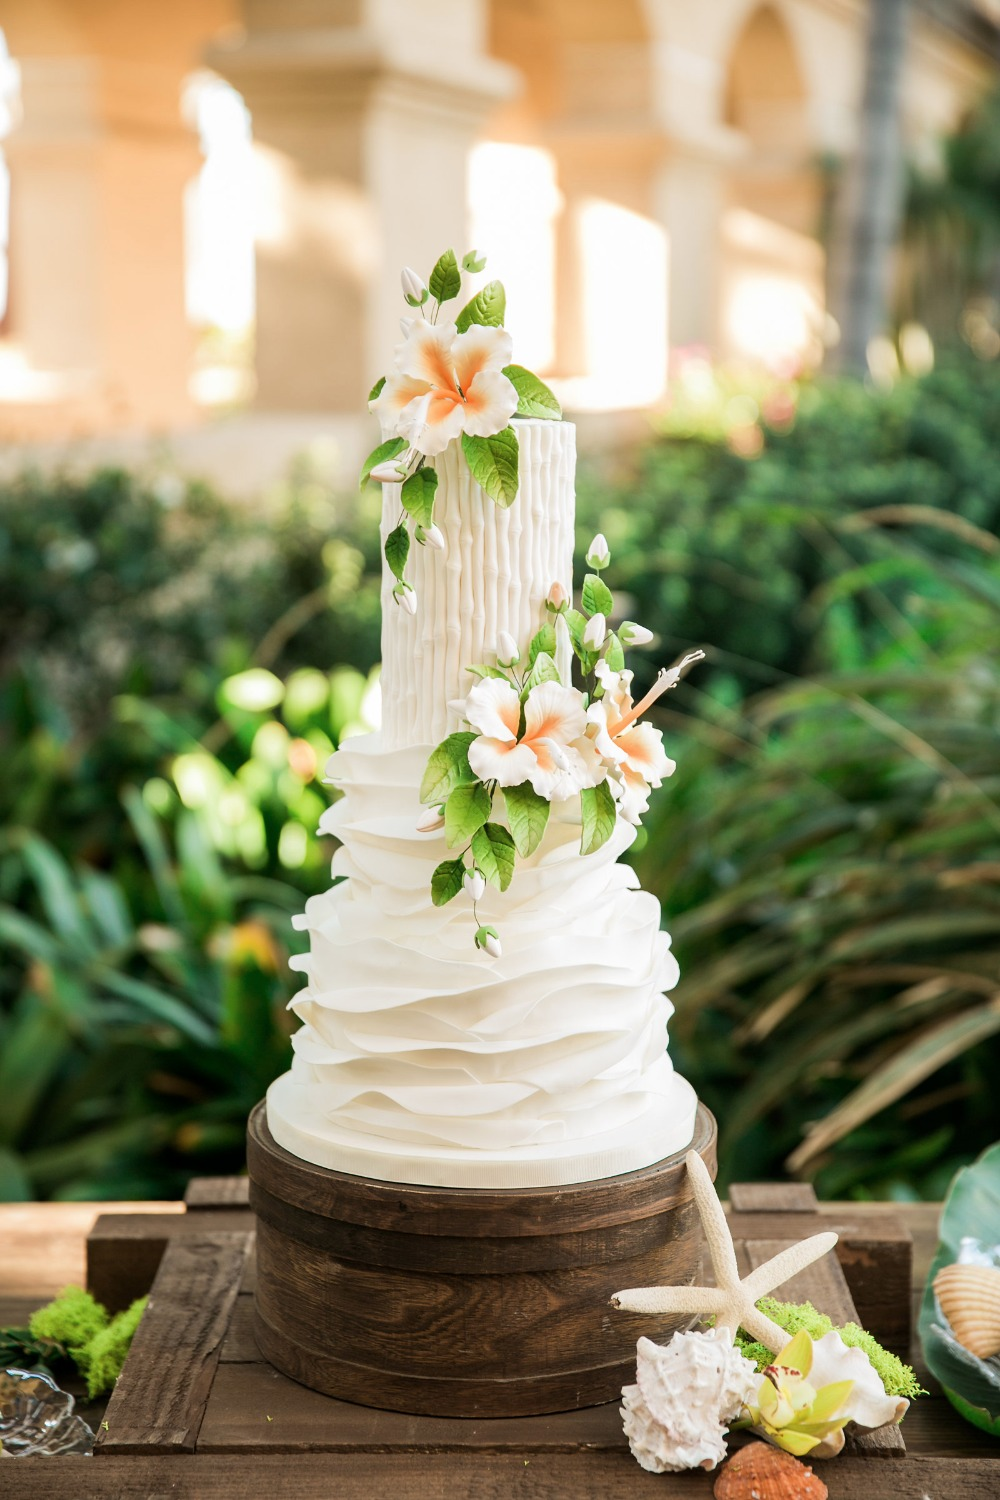 Tropical white wedding cake with flowers